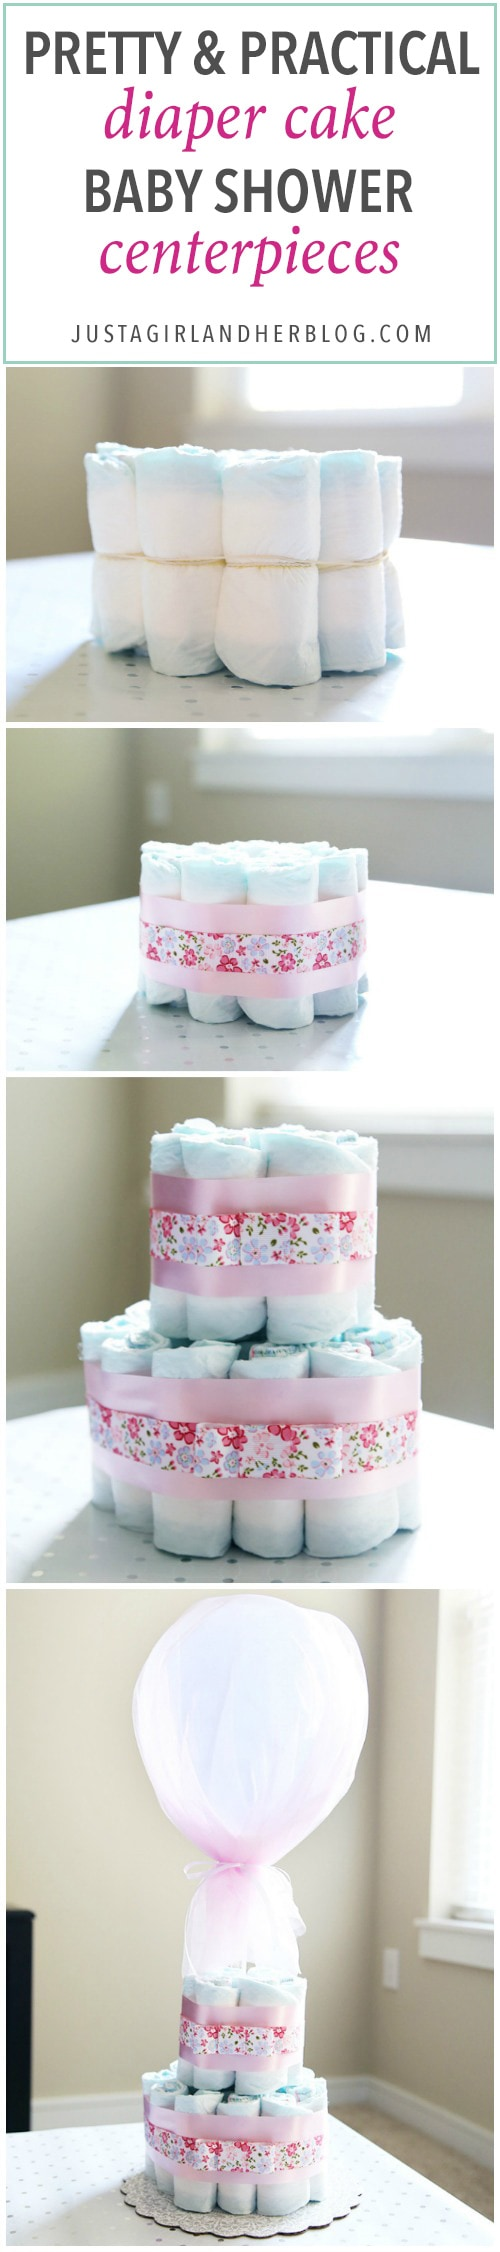 These beautiful diaper cakes make the perfect baby shower centerpieces! They are easy party decor and can be adapted for boys or girls! I'm definitely making these cute decorations for our next shower!